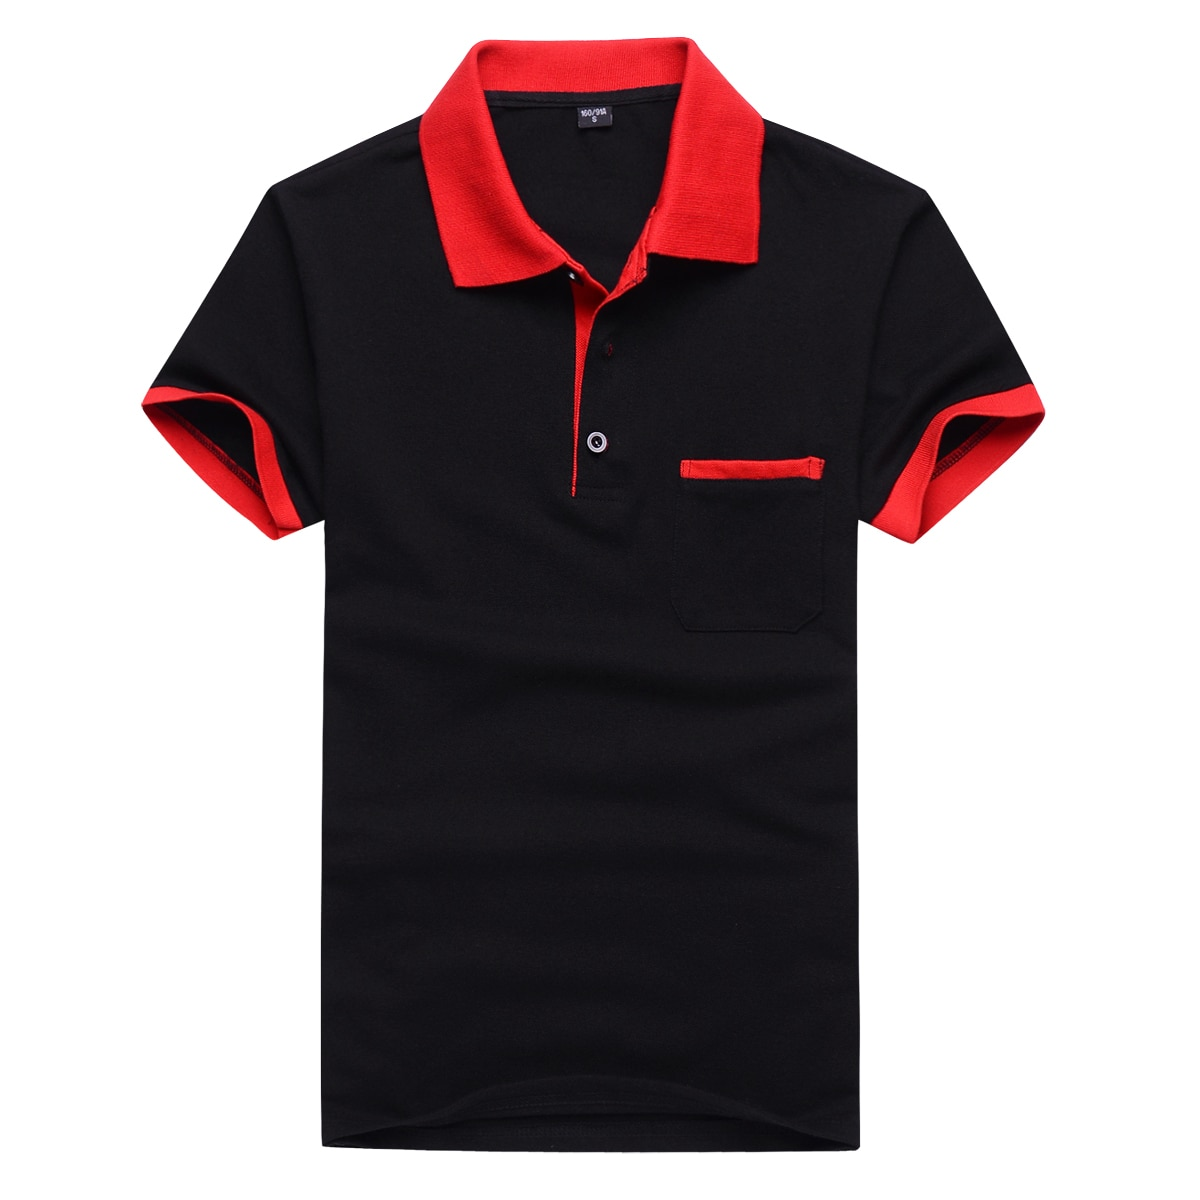 Quick-drying Polo shirt men's summer stitching men's shorts sleeves Polo business clothes luxury men's T-shirt brand PolosMTP129